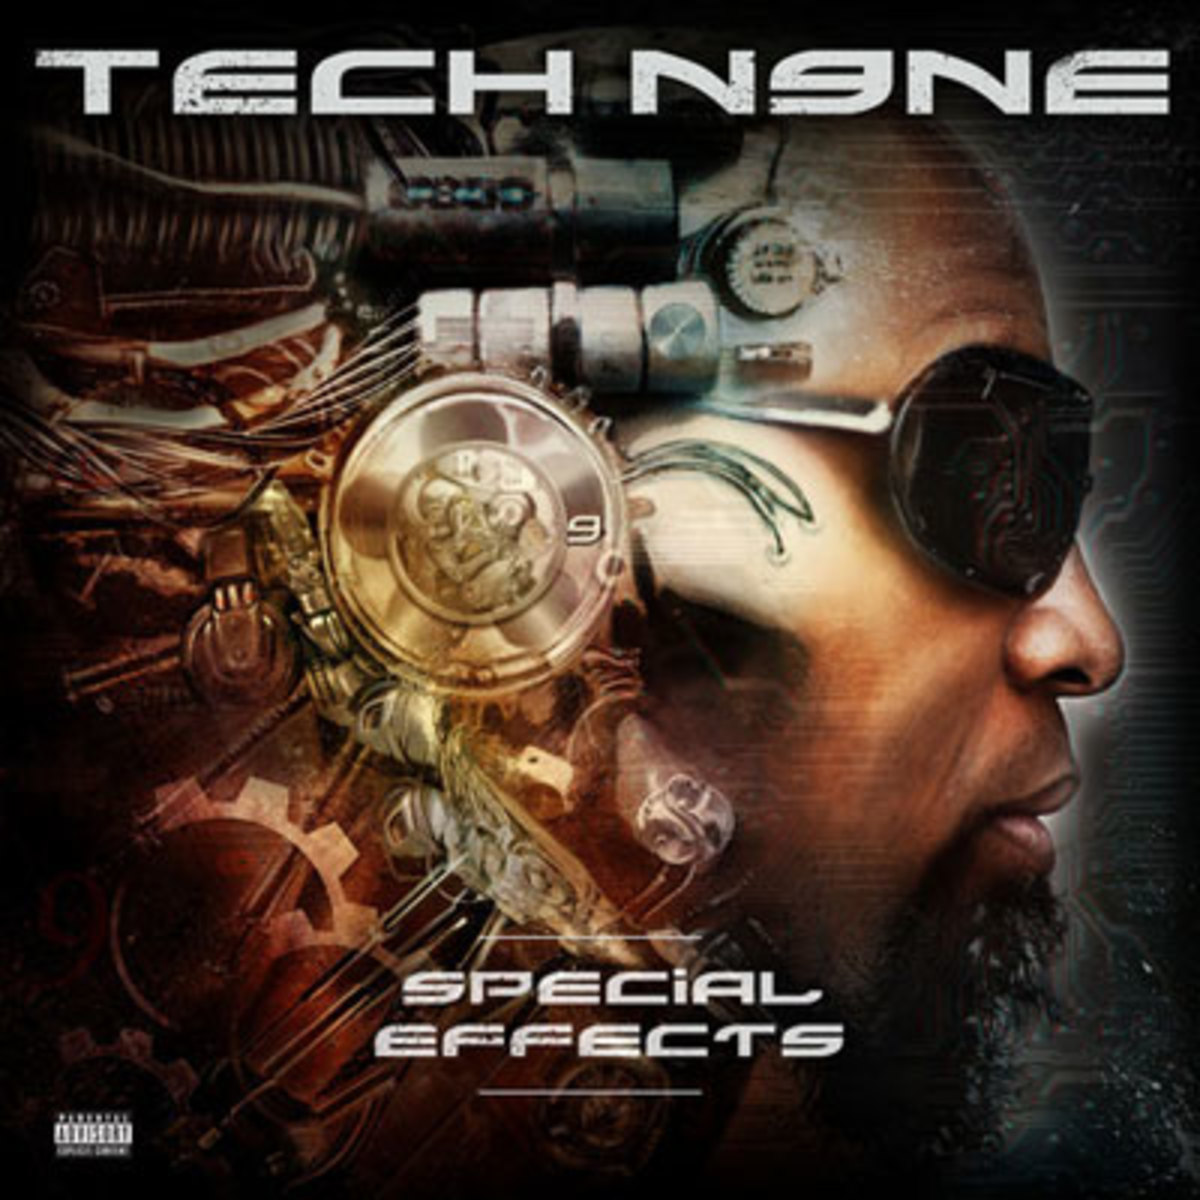 techn9ne-specialeffects.jpg